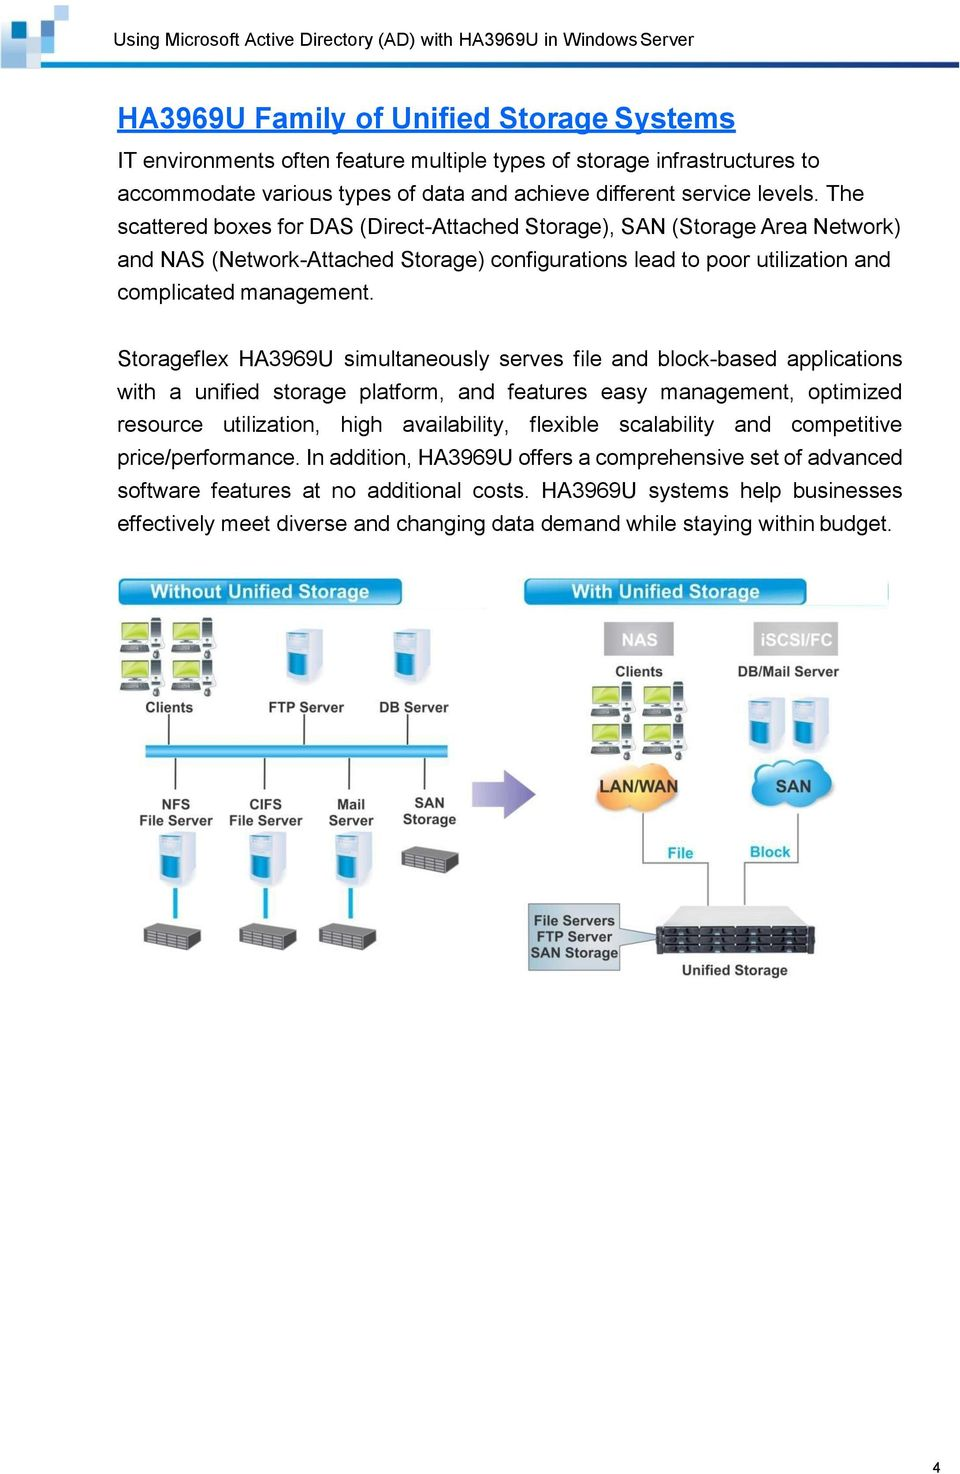 Storageflex HA3969U simultaneously serves file and block-based applications with a unified storage platform, and features easy management, optimized resource utilization, high availability, flexible